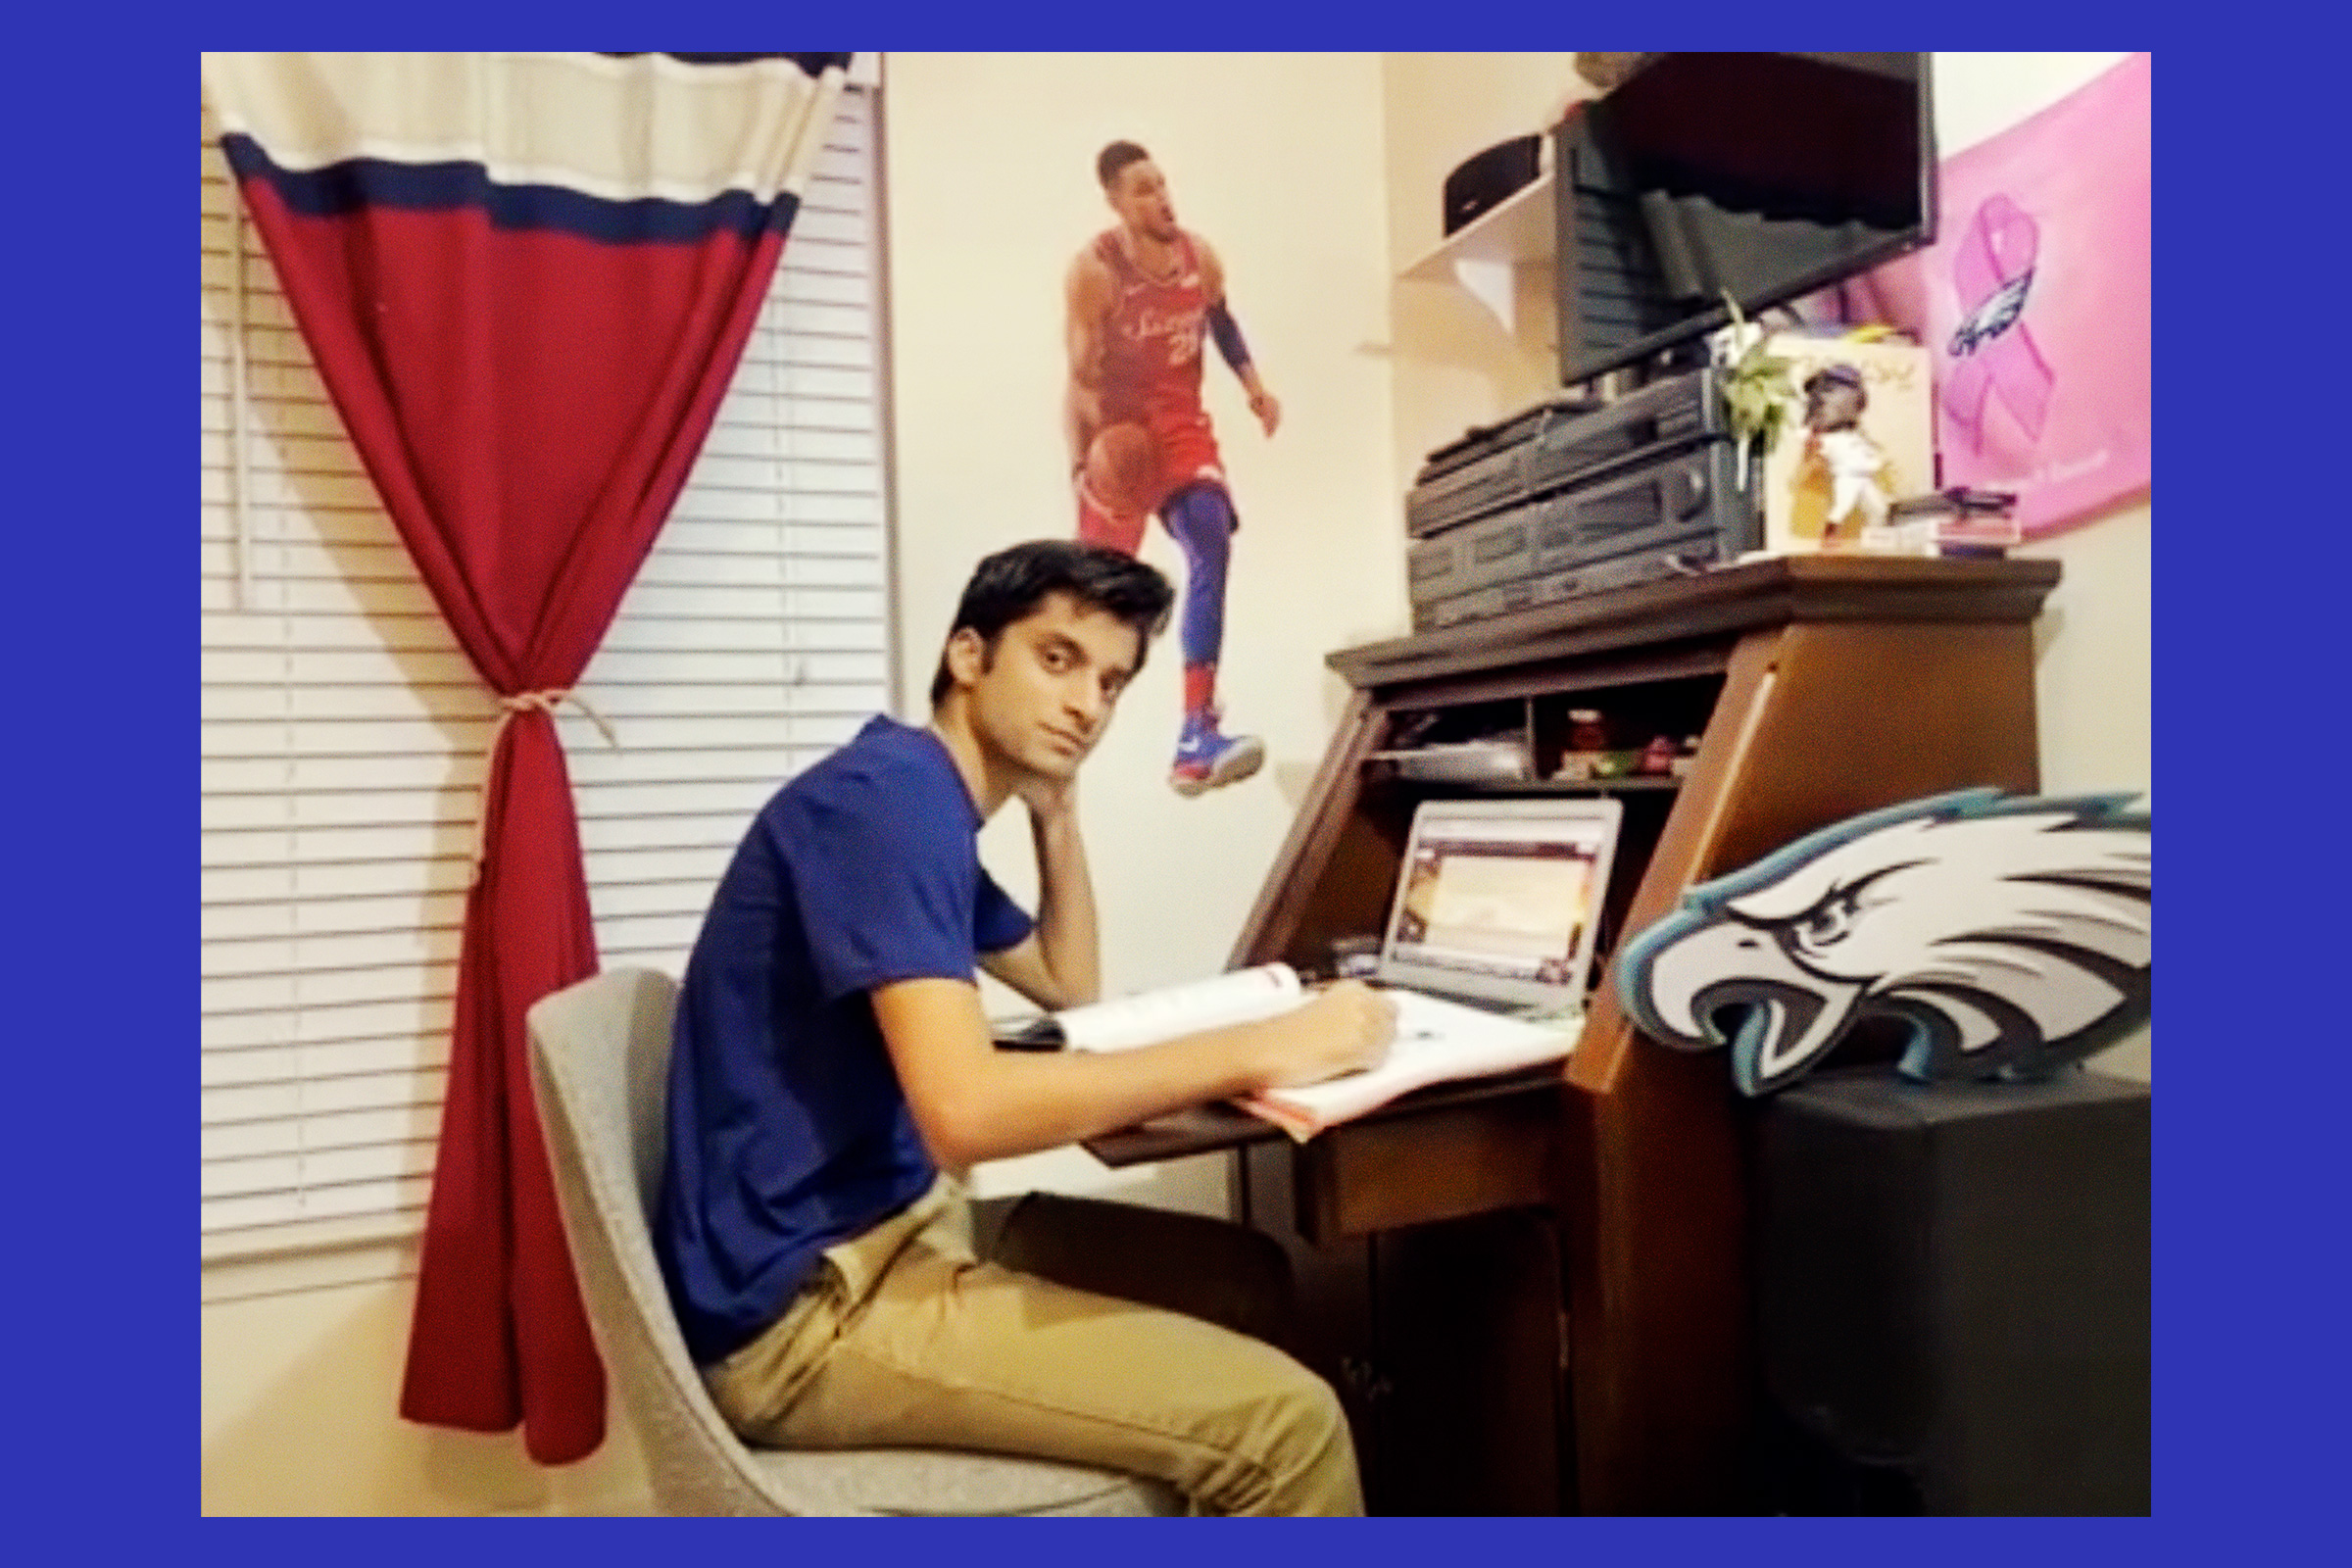 Dhruv started a fundraising nonprofit after his twin brother died of cancer in 2018 but has struggled to keep it afloat; he's pictured here at home, via Zoom